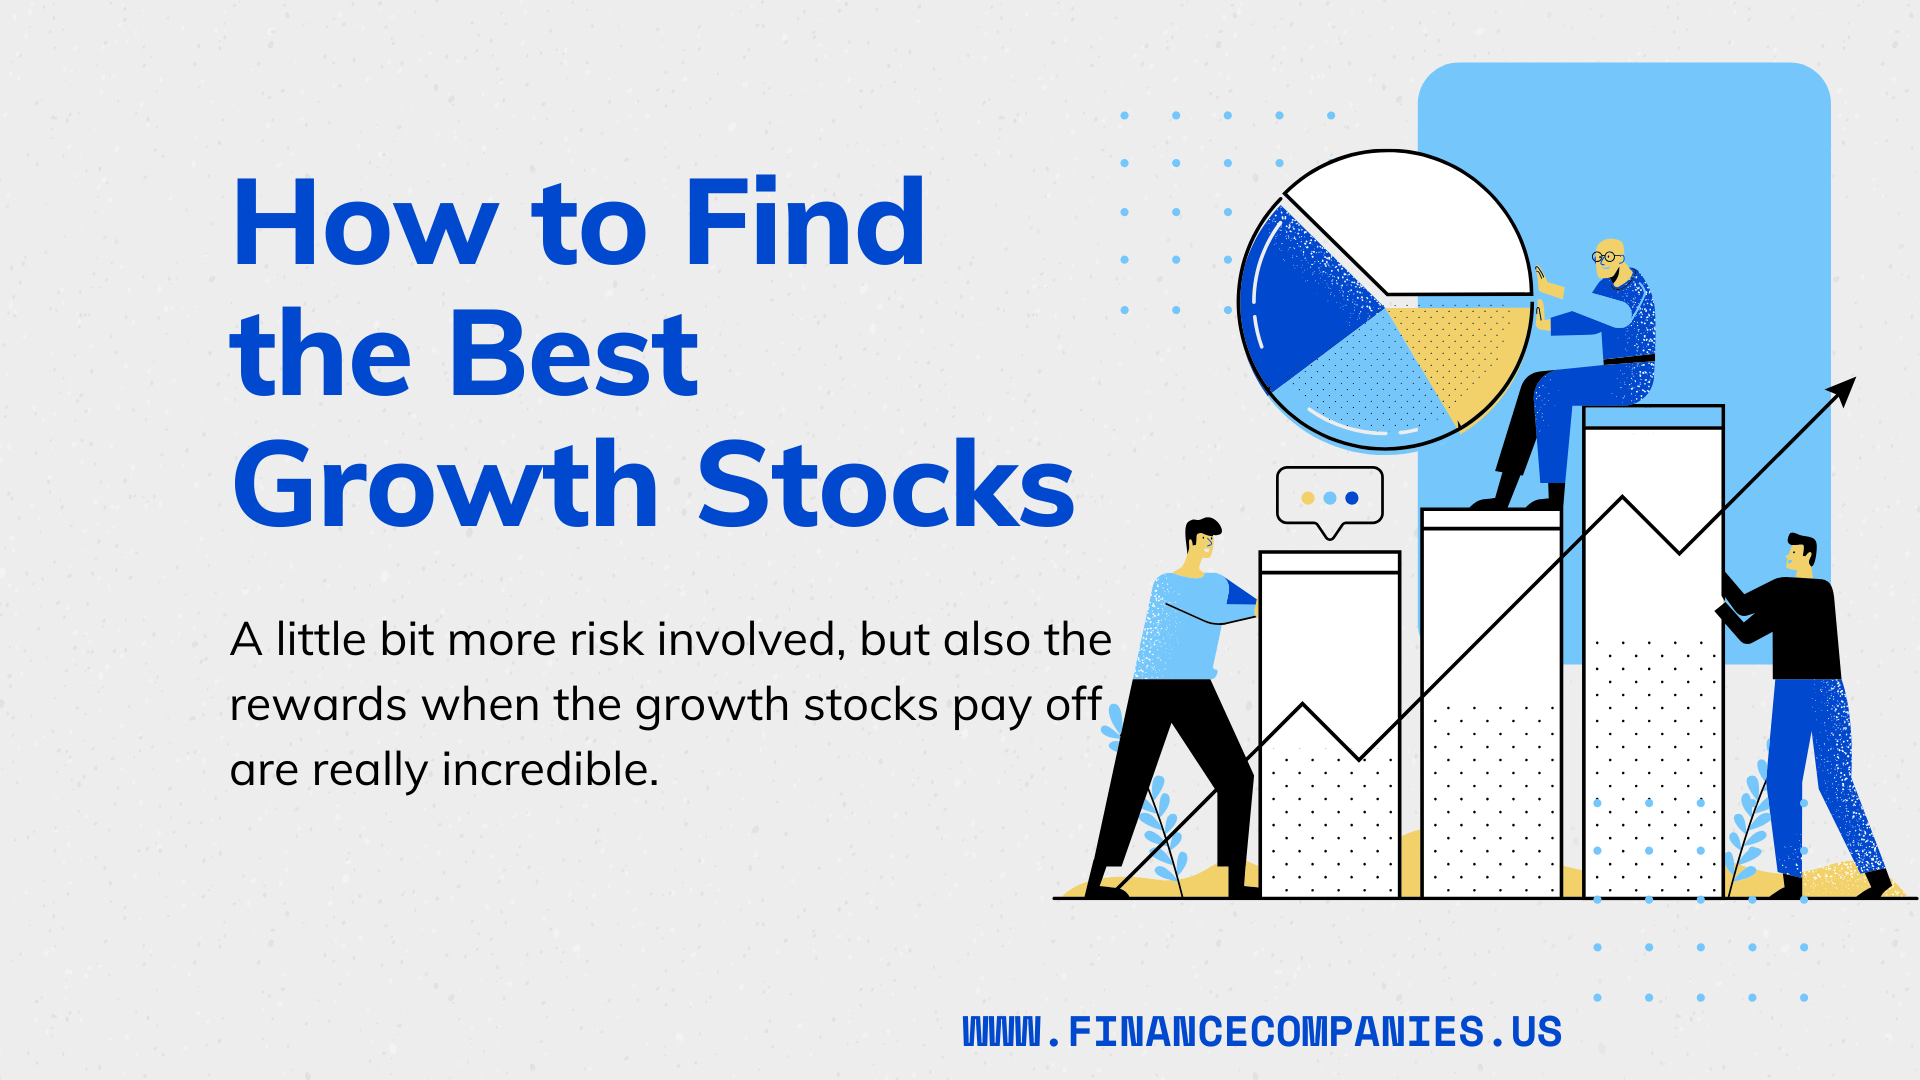 How to Find the Best Growth Stocks 2020 - FinanceCompanies